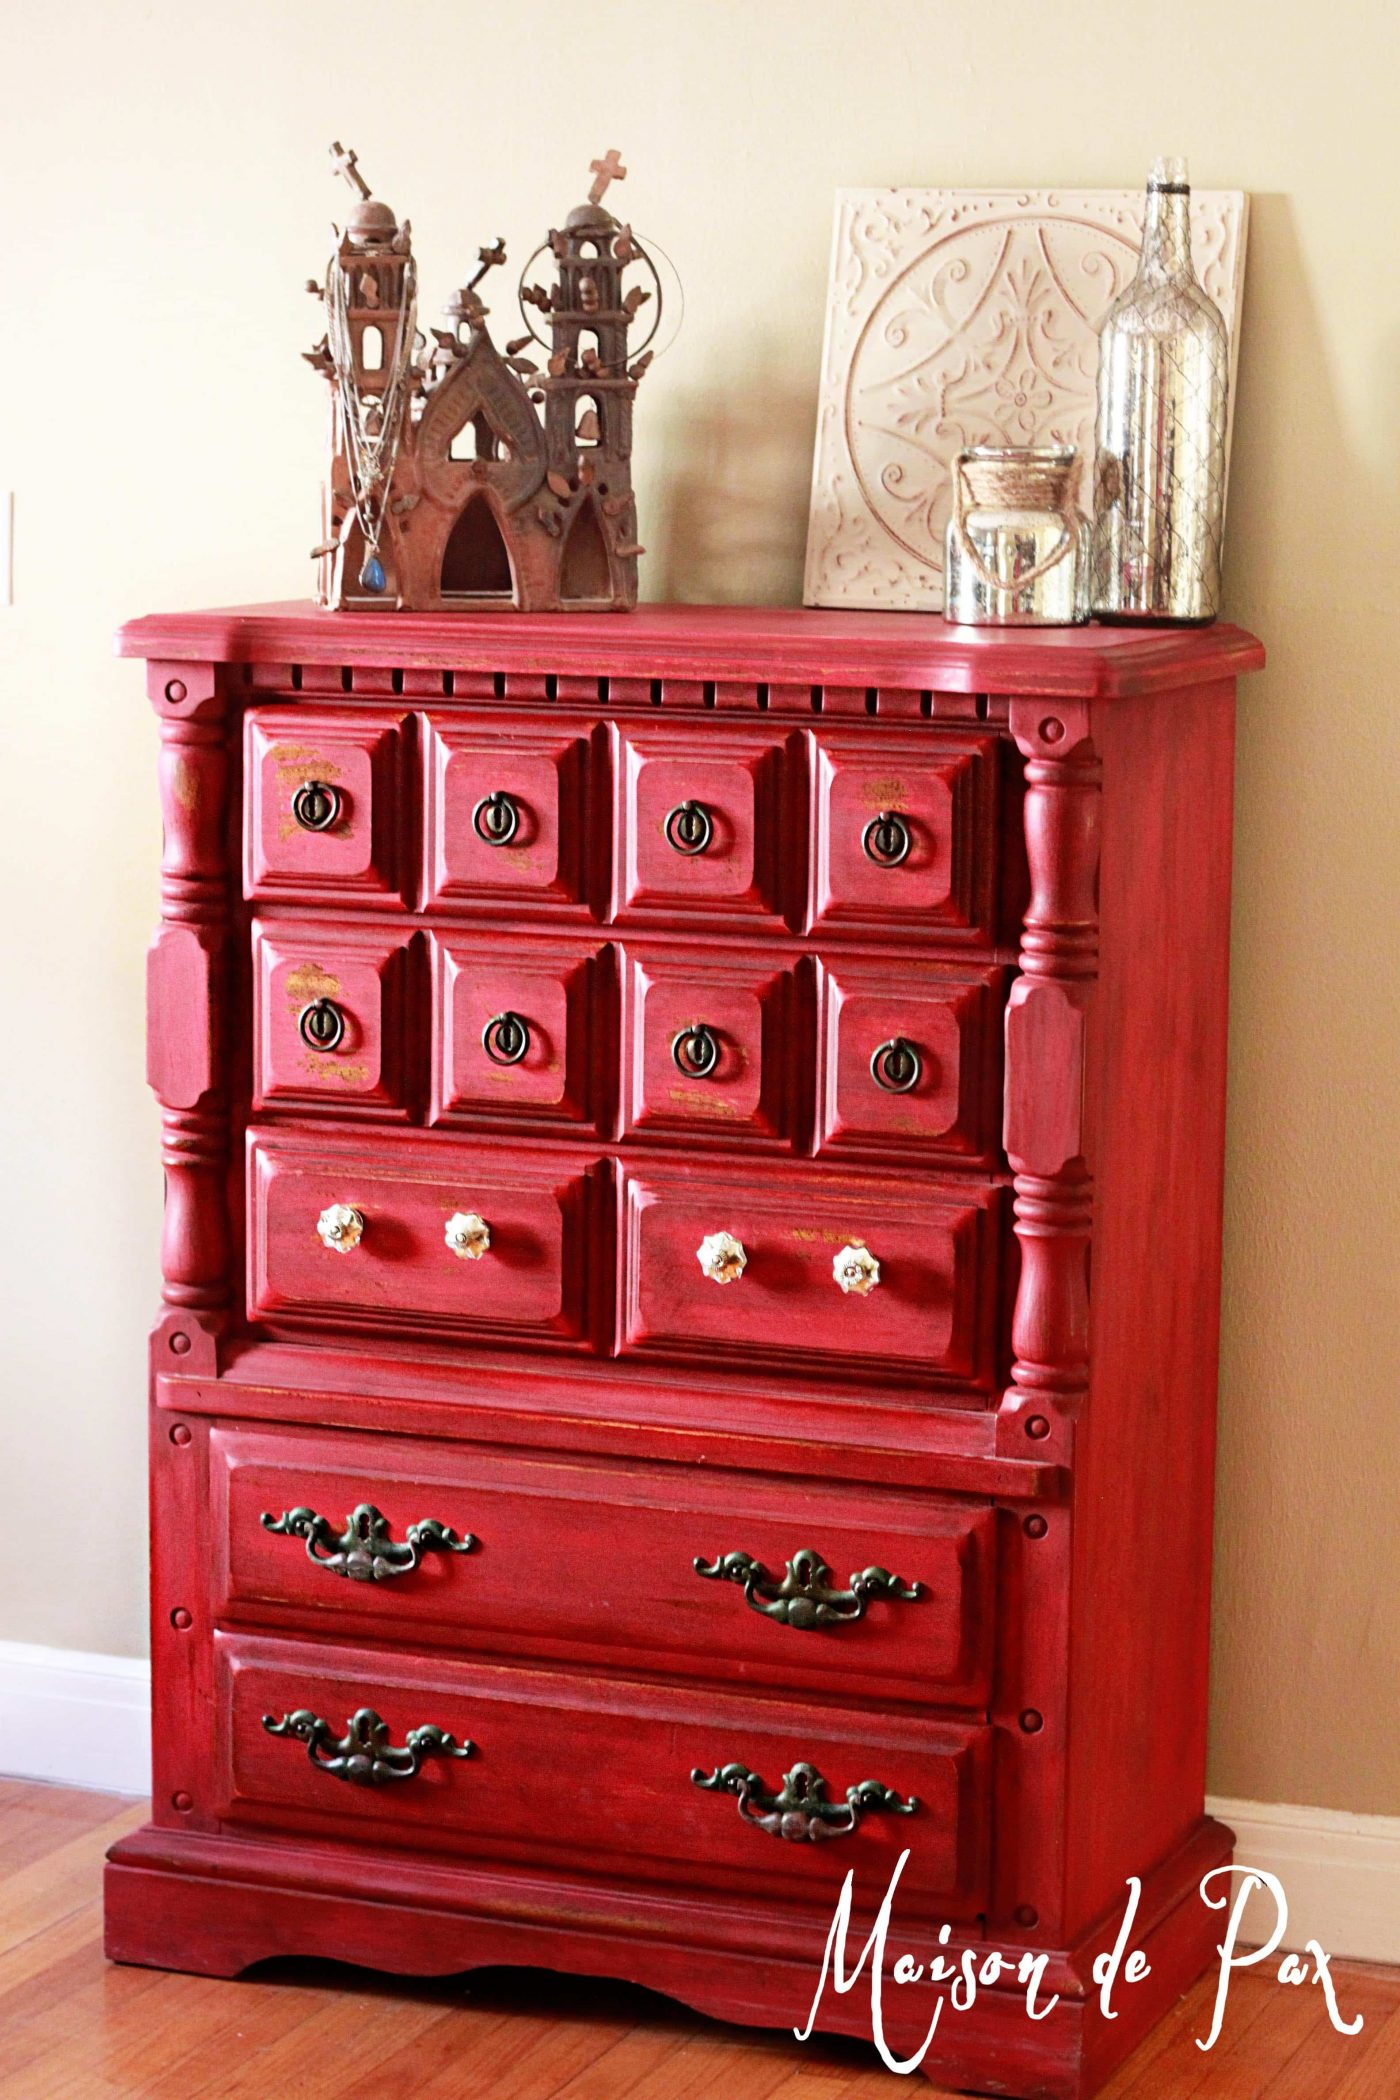 Red painted cabinet- Maison de Pax